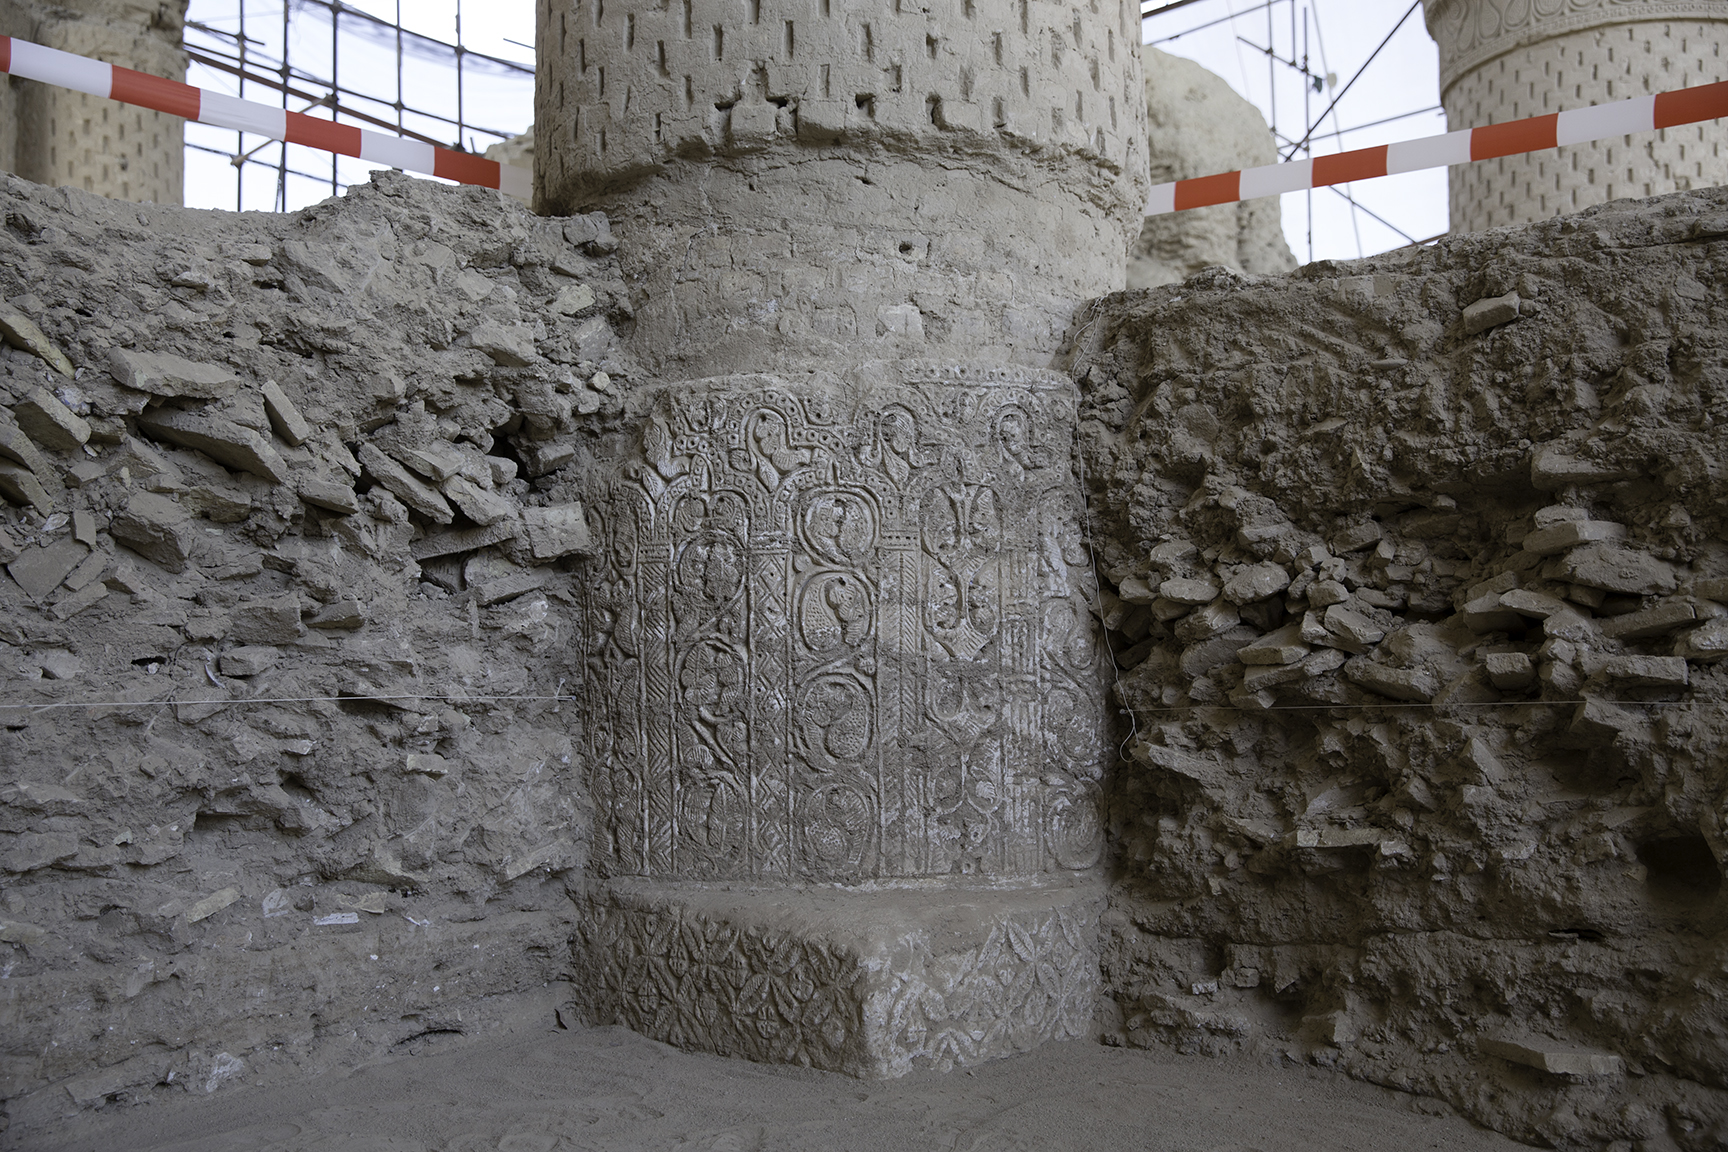 The famed nine domes of Noh Gunbad caved in many centuries ago, burying the mosque's interior. Here a pillar has been partially un-earthed by a team of international and Afghan archaeologists.